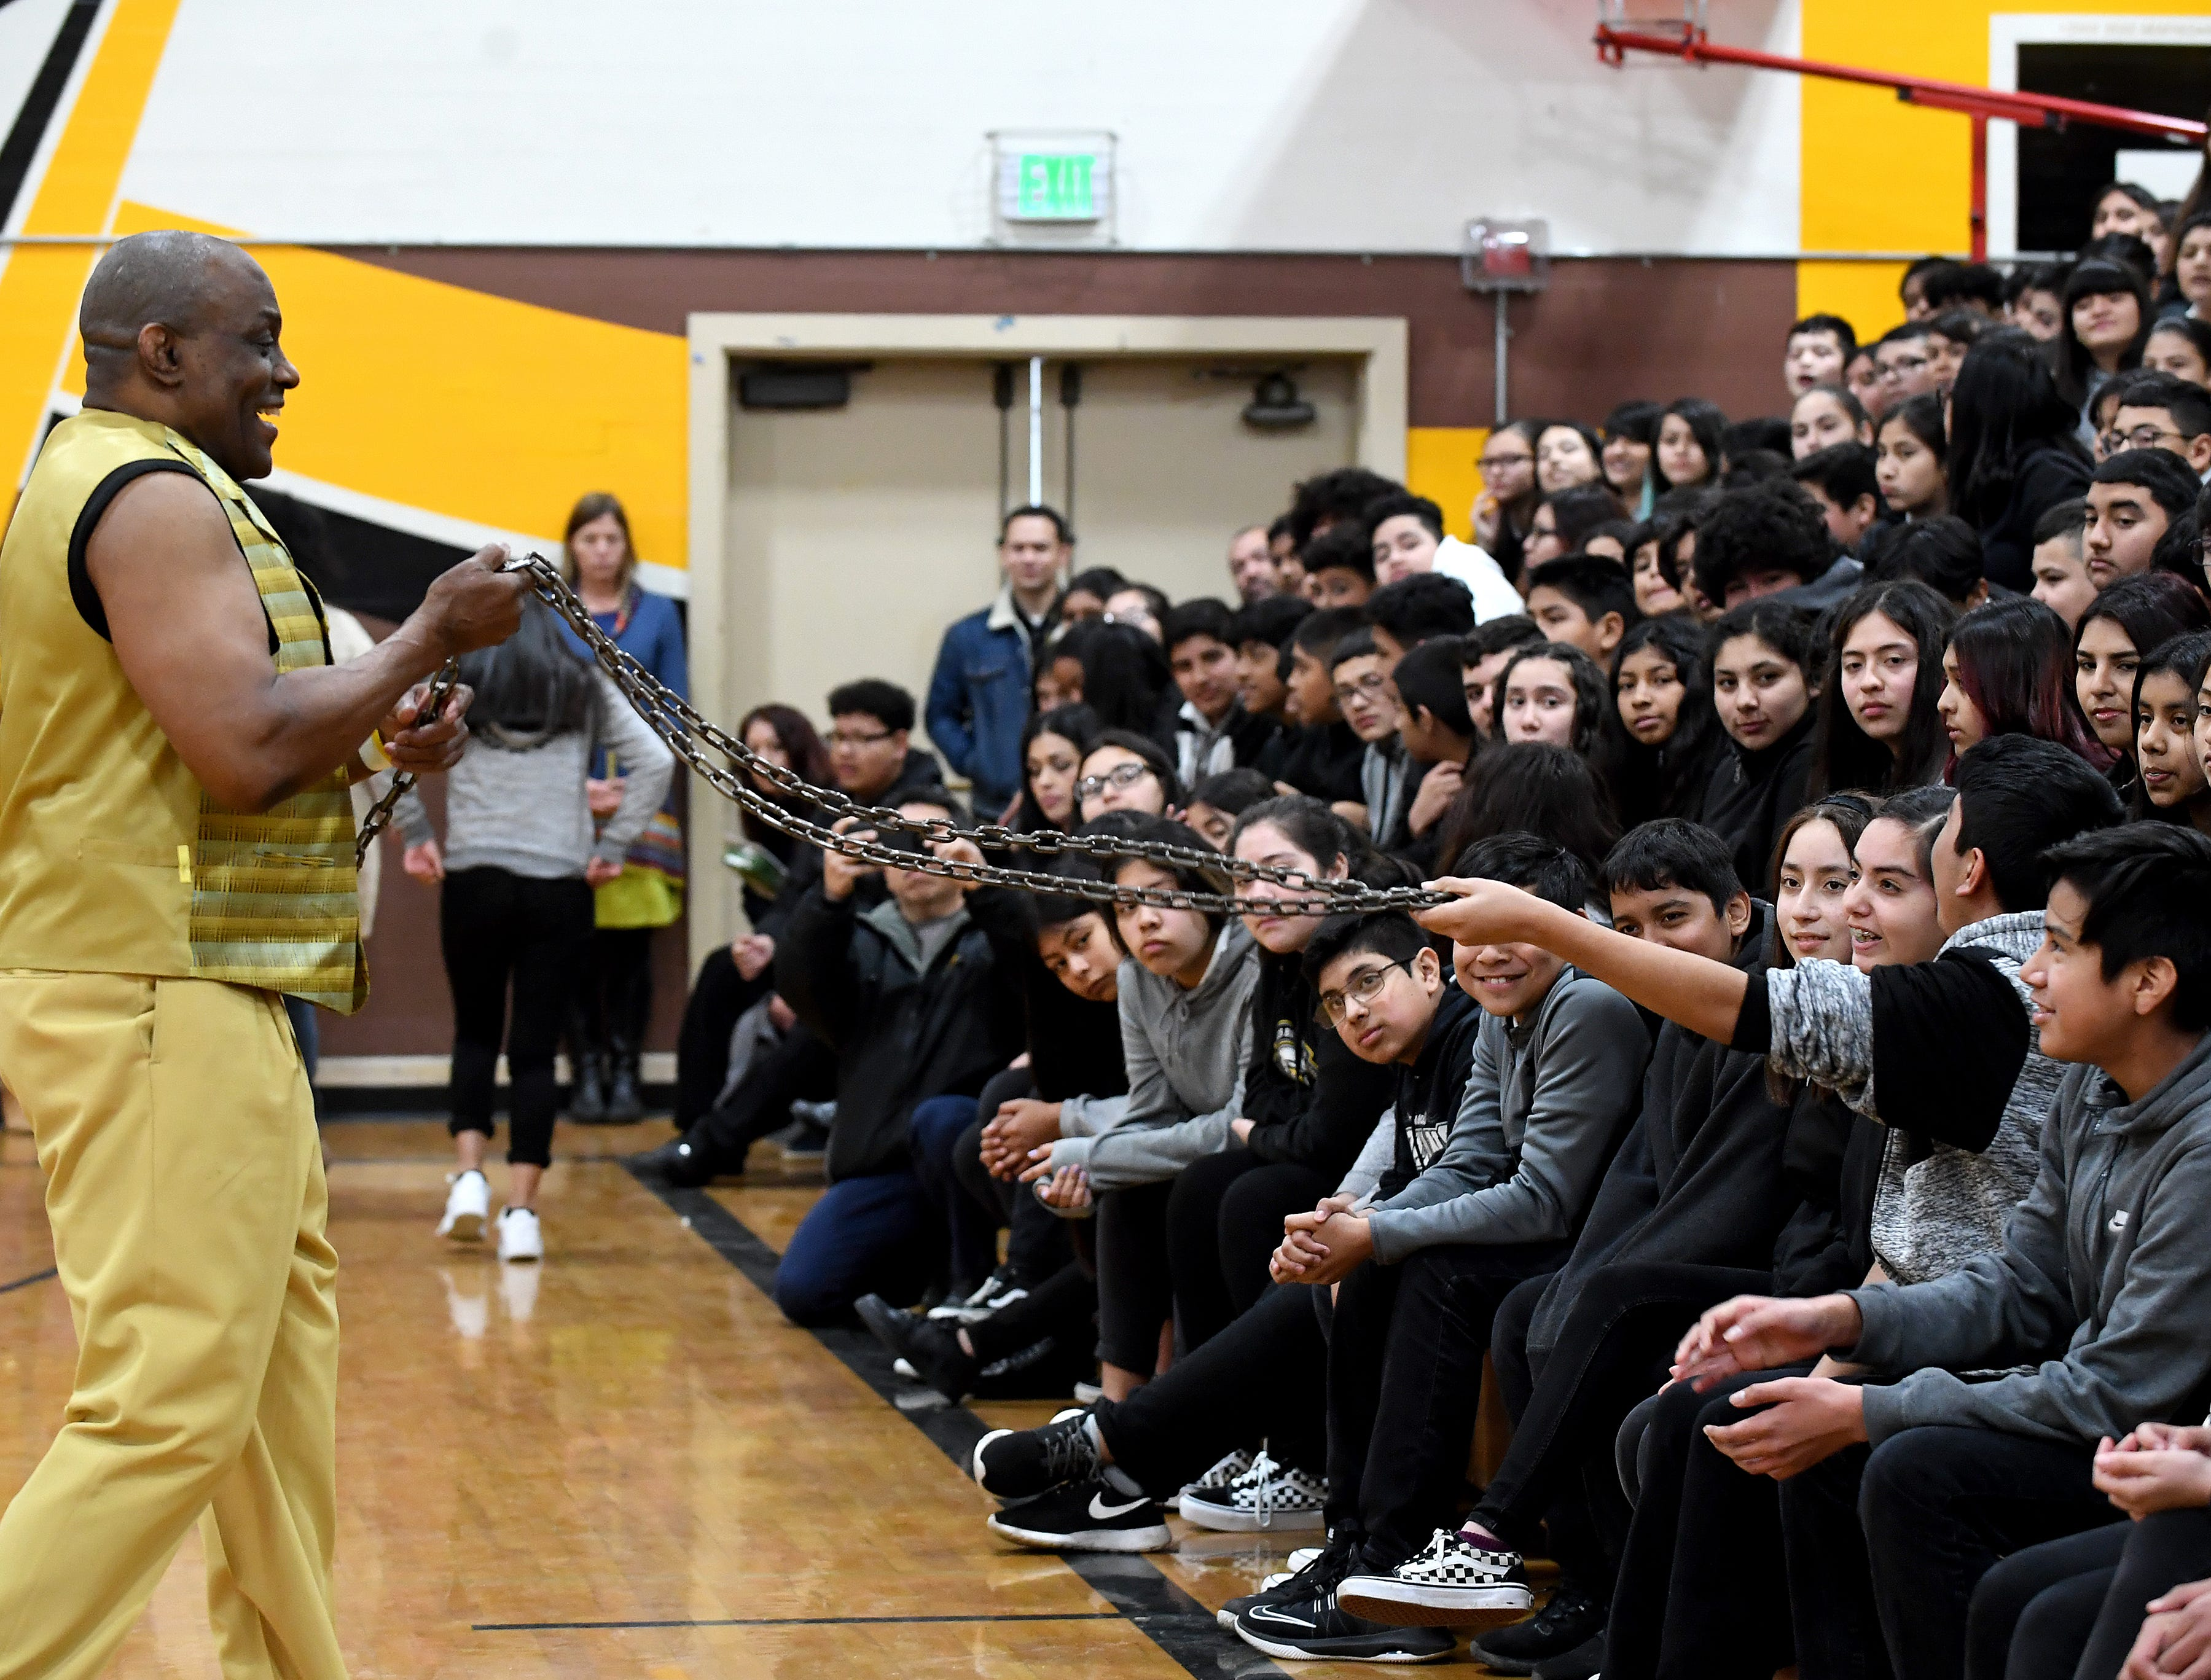 James Thompson lets students at El Sausal Middle School feel the weight of the chain he performs with during a visit to the school on FEb. 21, 2019.